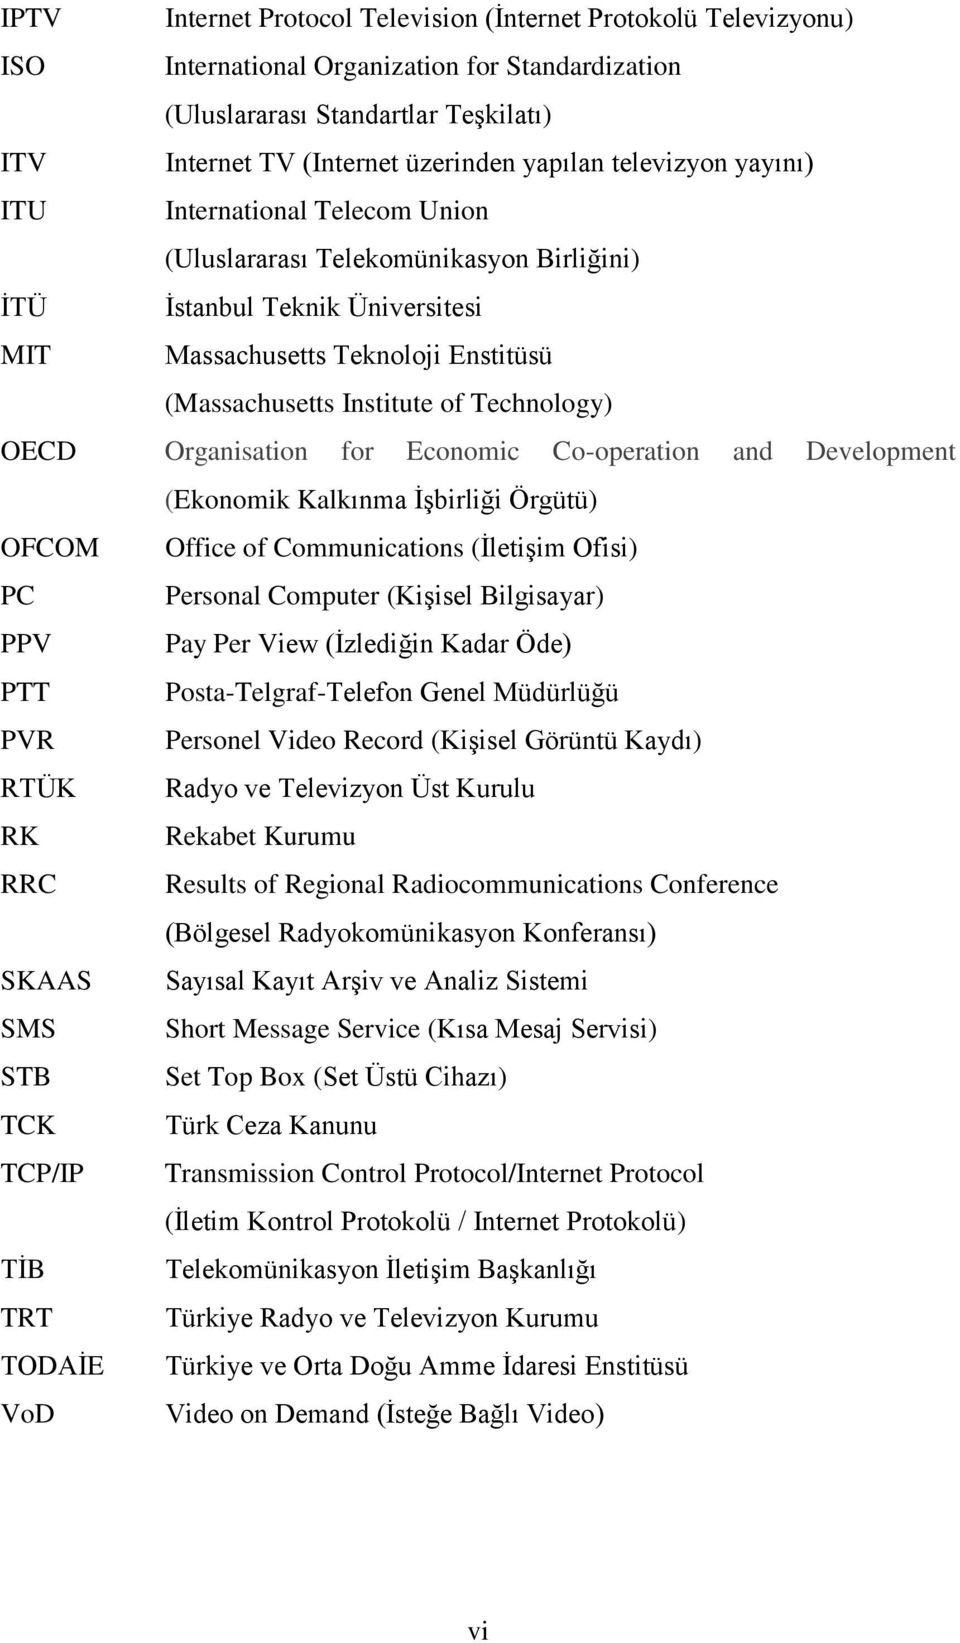 Technology) OECD Organisation for Economic Co-operation and Development (Ekonomik Kalkınma İşbirliği Örgütü) OFCOM Office of Communications (İletişim Ofisi) PC Personal Computer (Kişisel Bilgisayar)